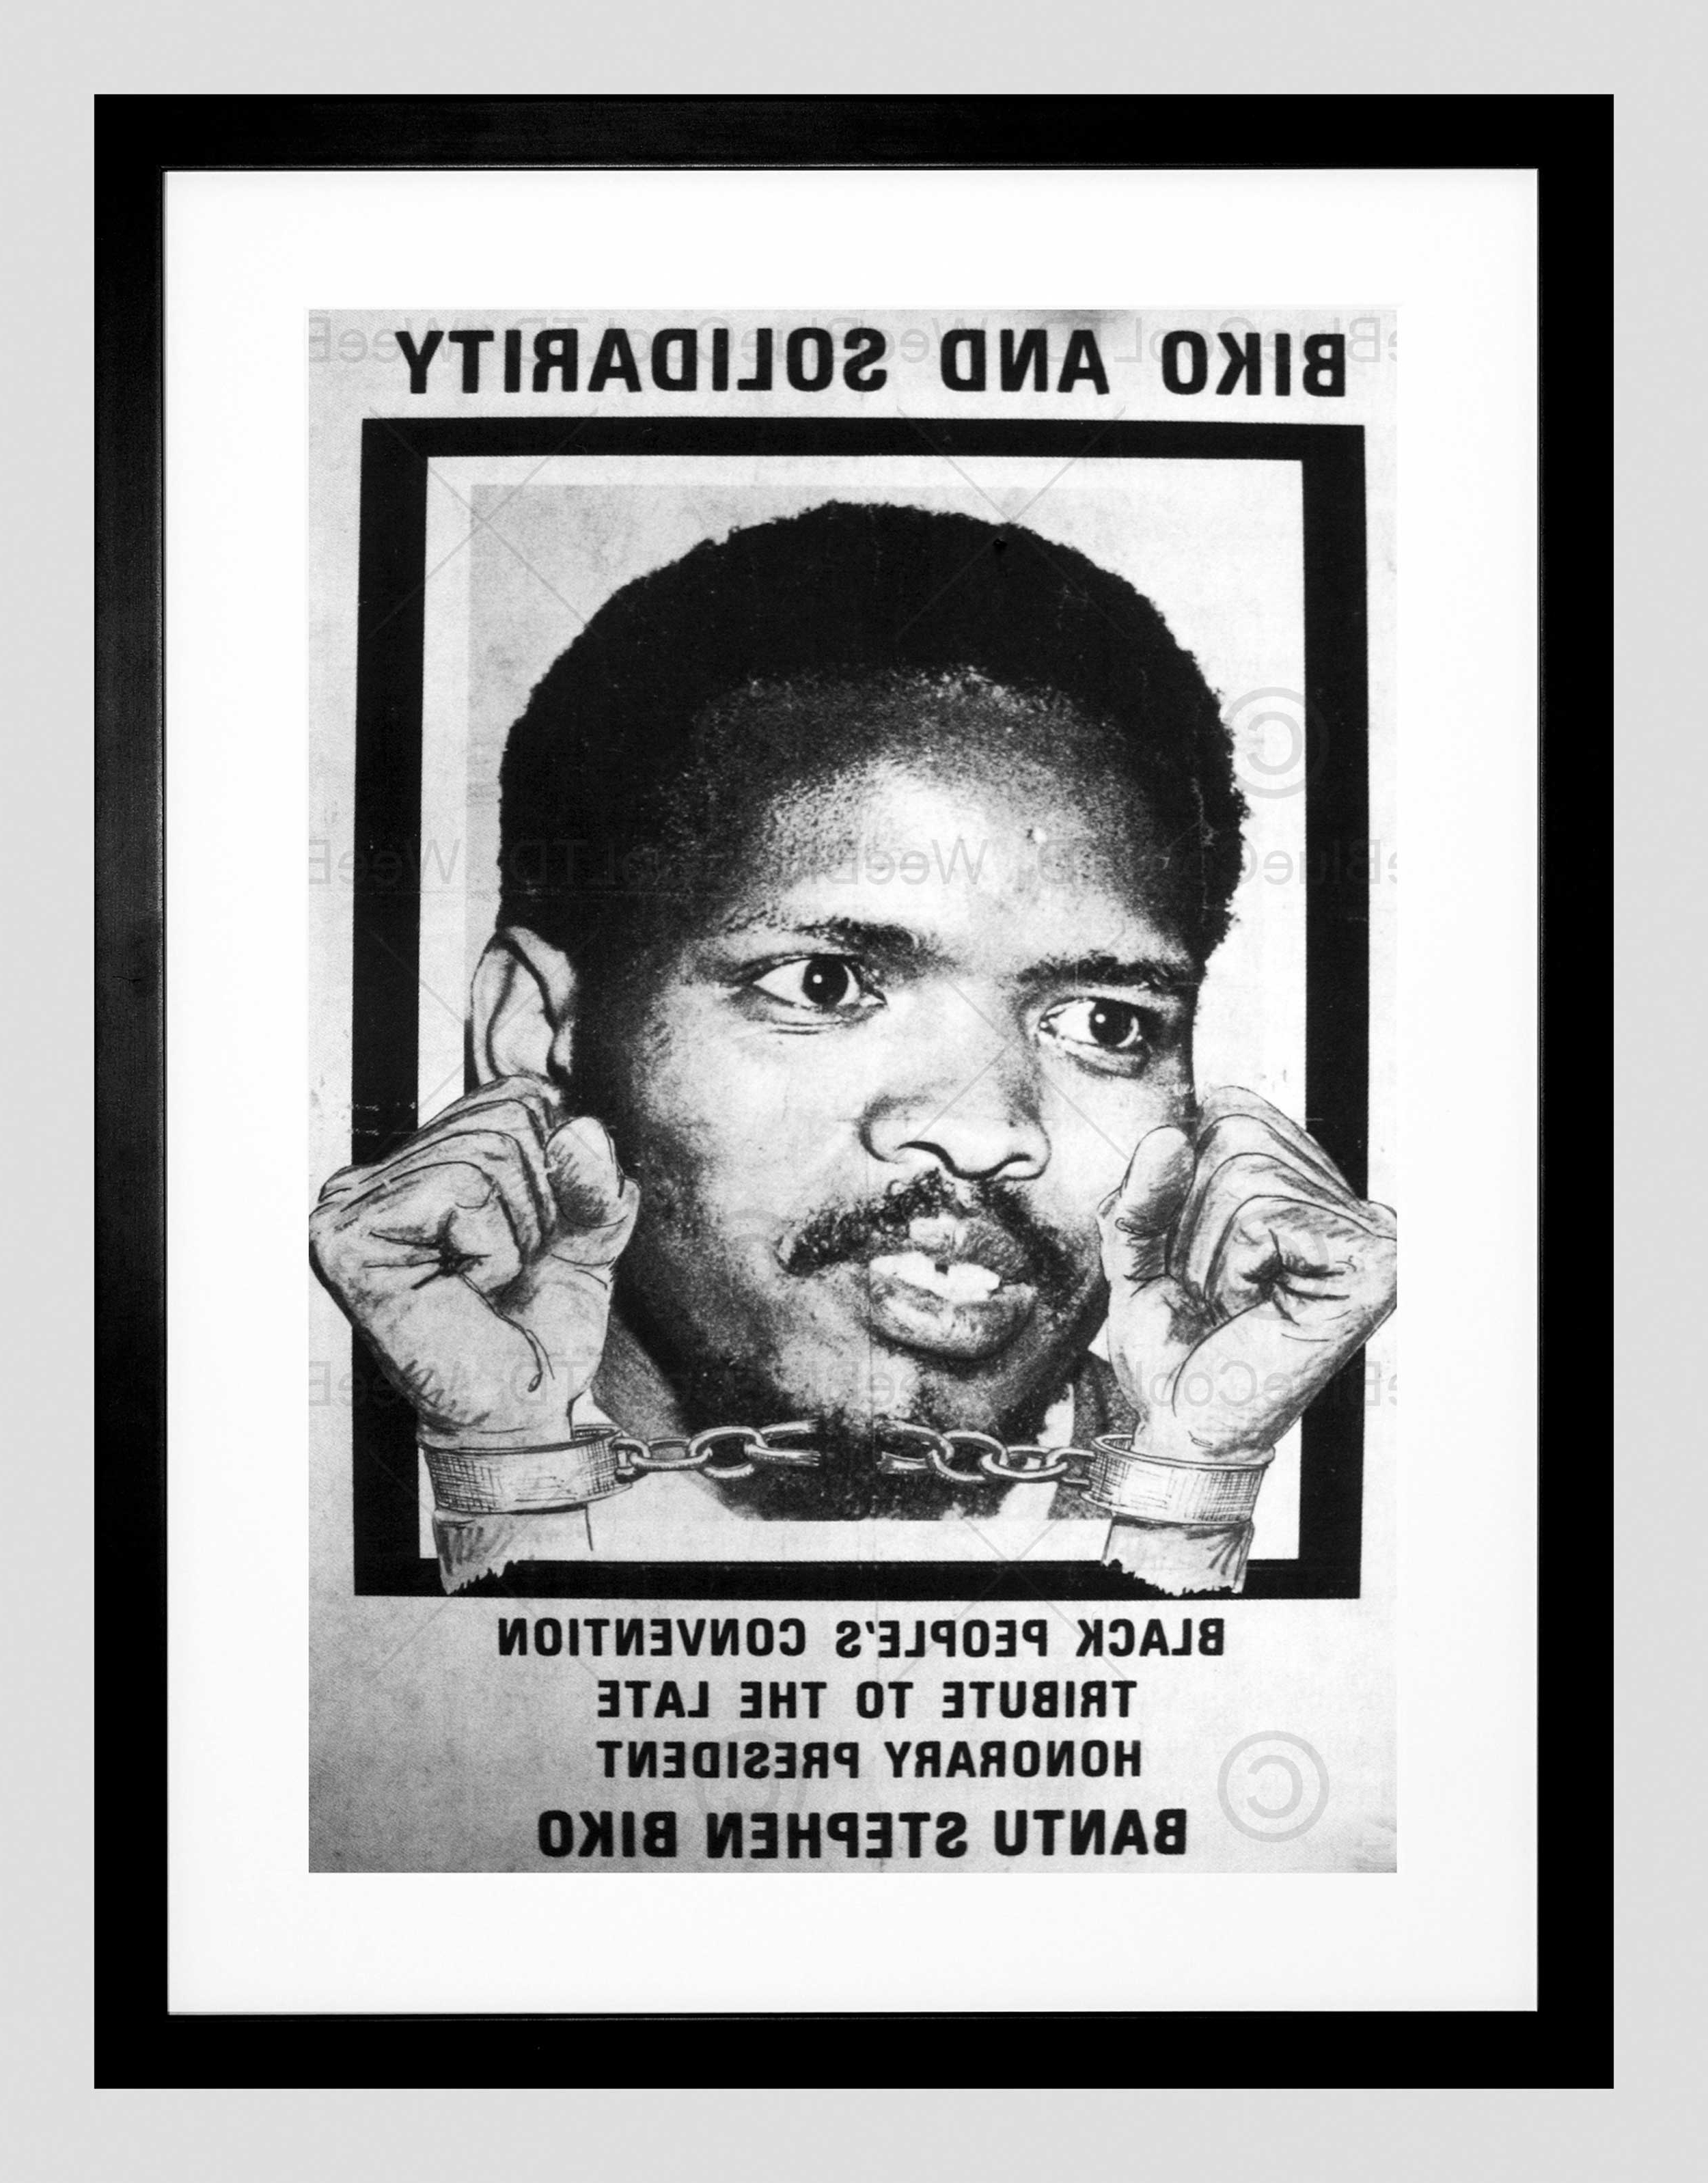 Trendy Political Steve Biko Anc Apartheid South Africa Framed Art Print Pertaining To South Africa Framed Art Prints (View 4 of 15)